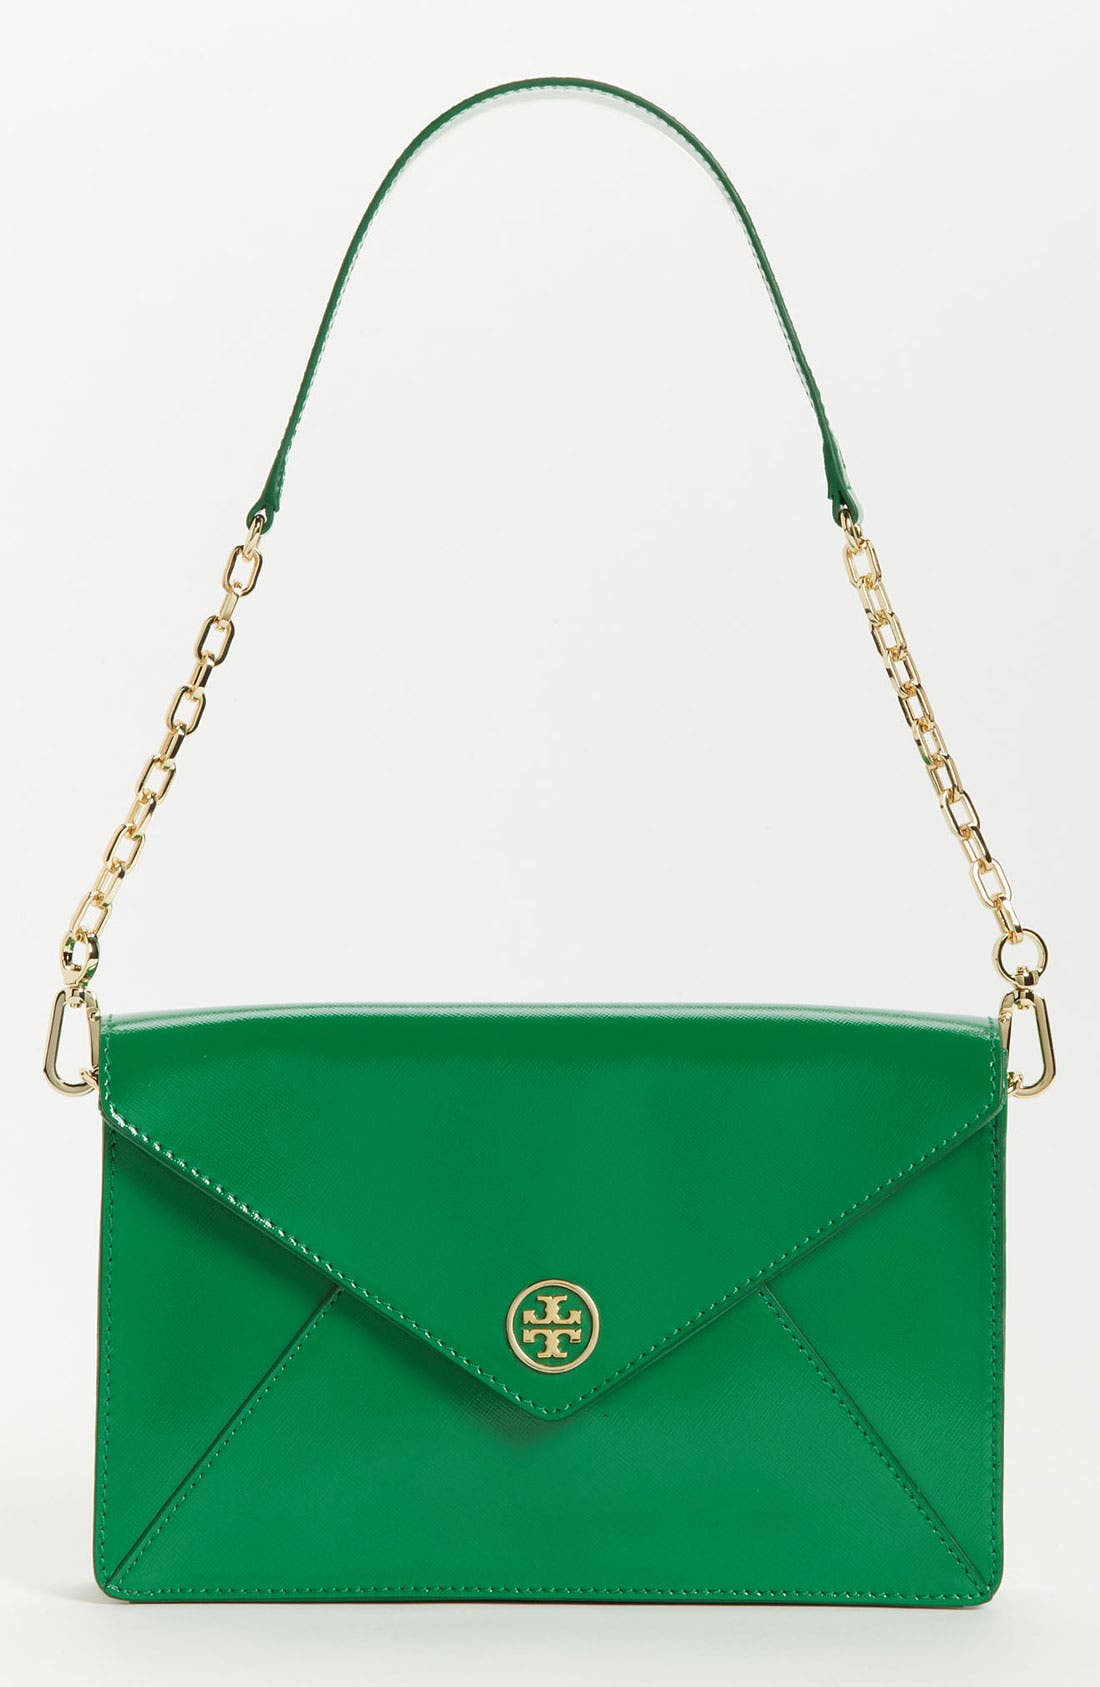 Main Image - Tory Burch 'Robinson' Patent Saffiano Leather Envelope Clutch